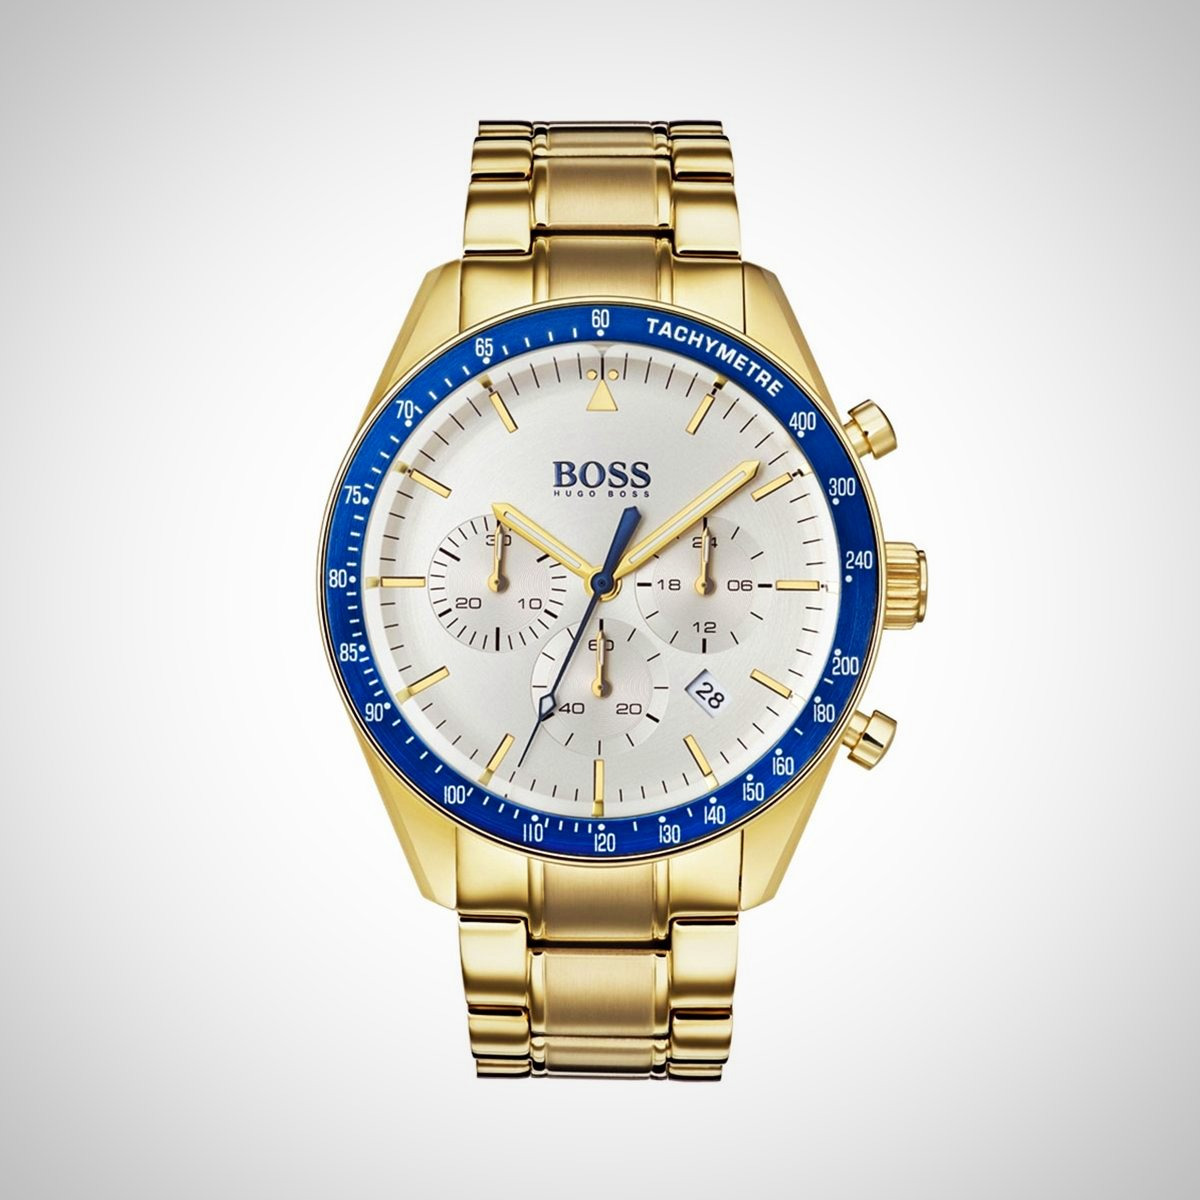 Hugo Boss 1513631 Trophy Men's Chronograph Watch